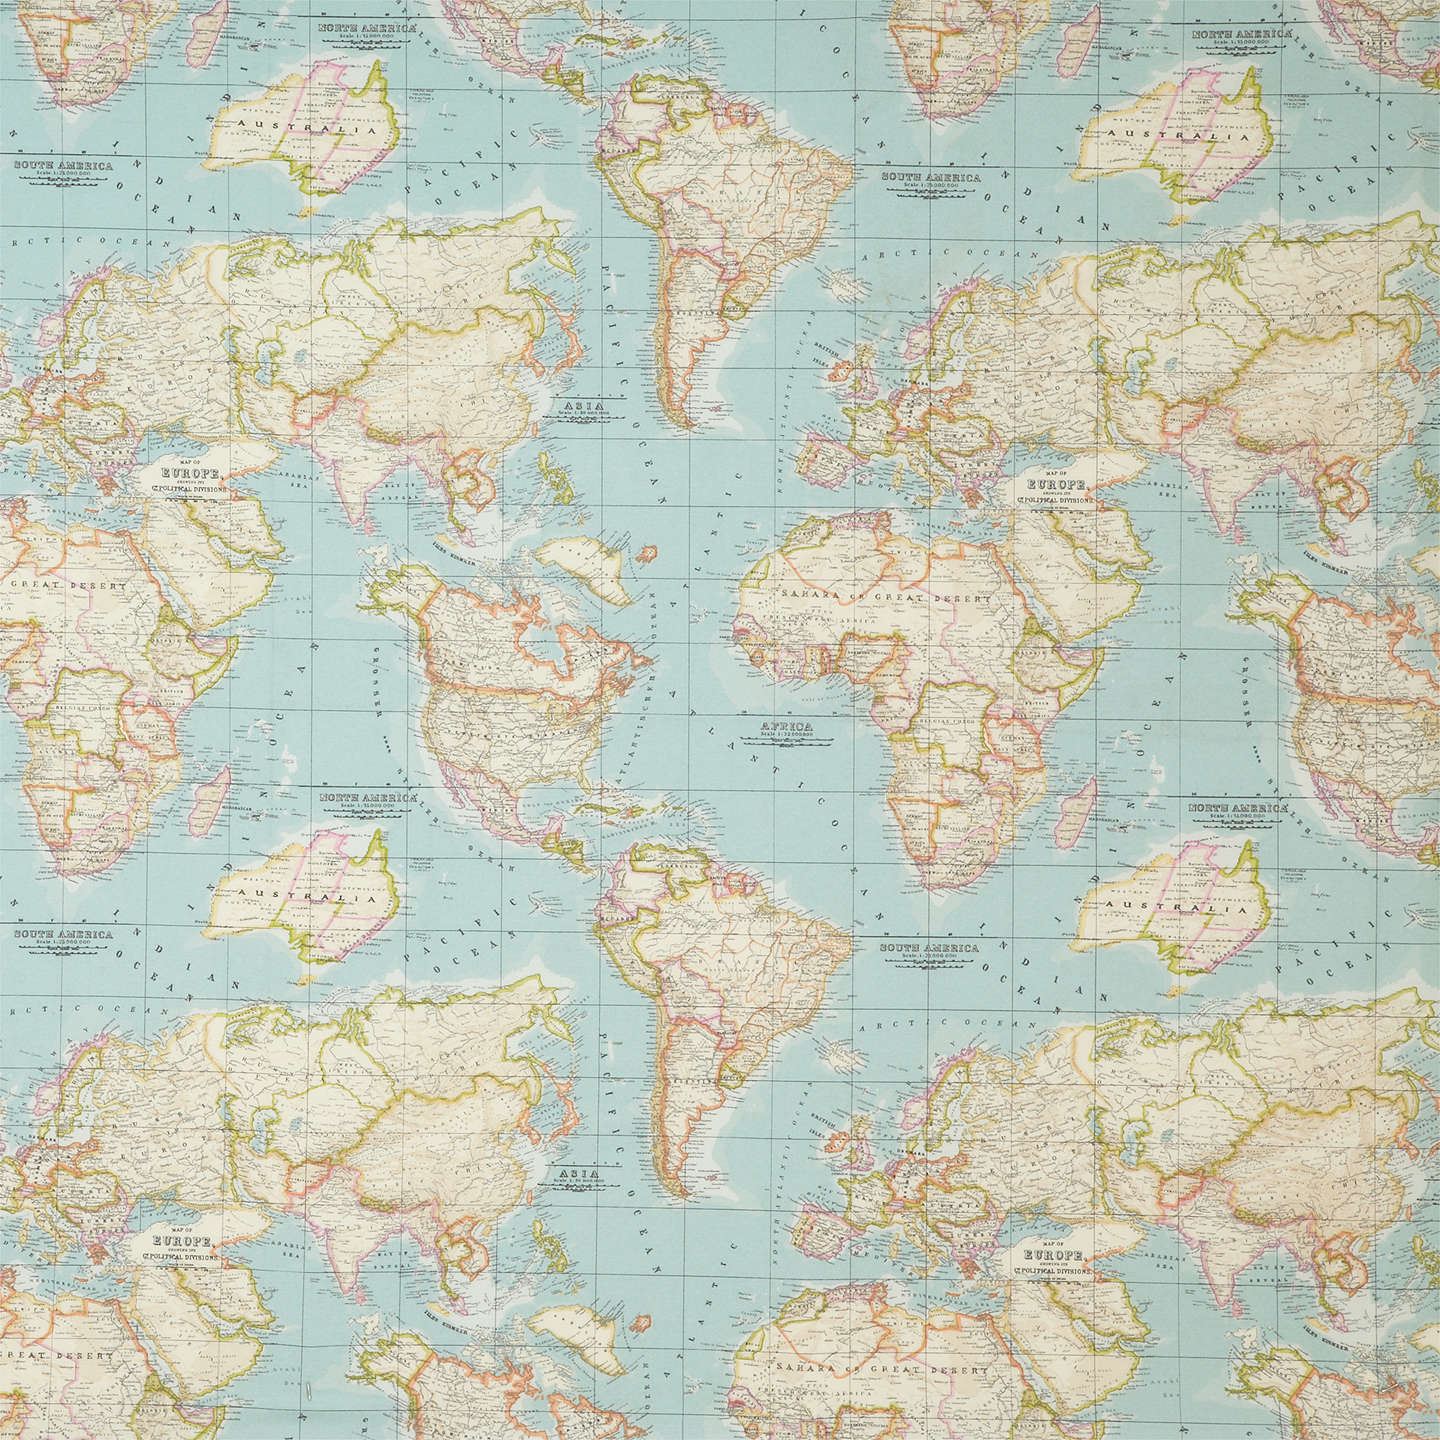 John lewis world map furnishing fabric blue at john lewis buyjohn lewis world map furnishing fabric blue online at johnlewis gumiabroncs Image collections